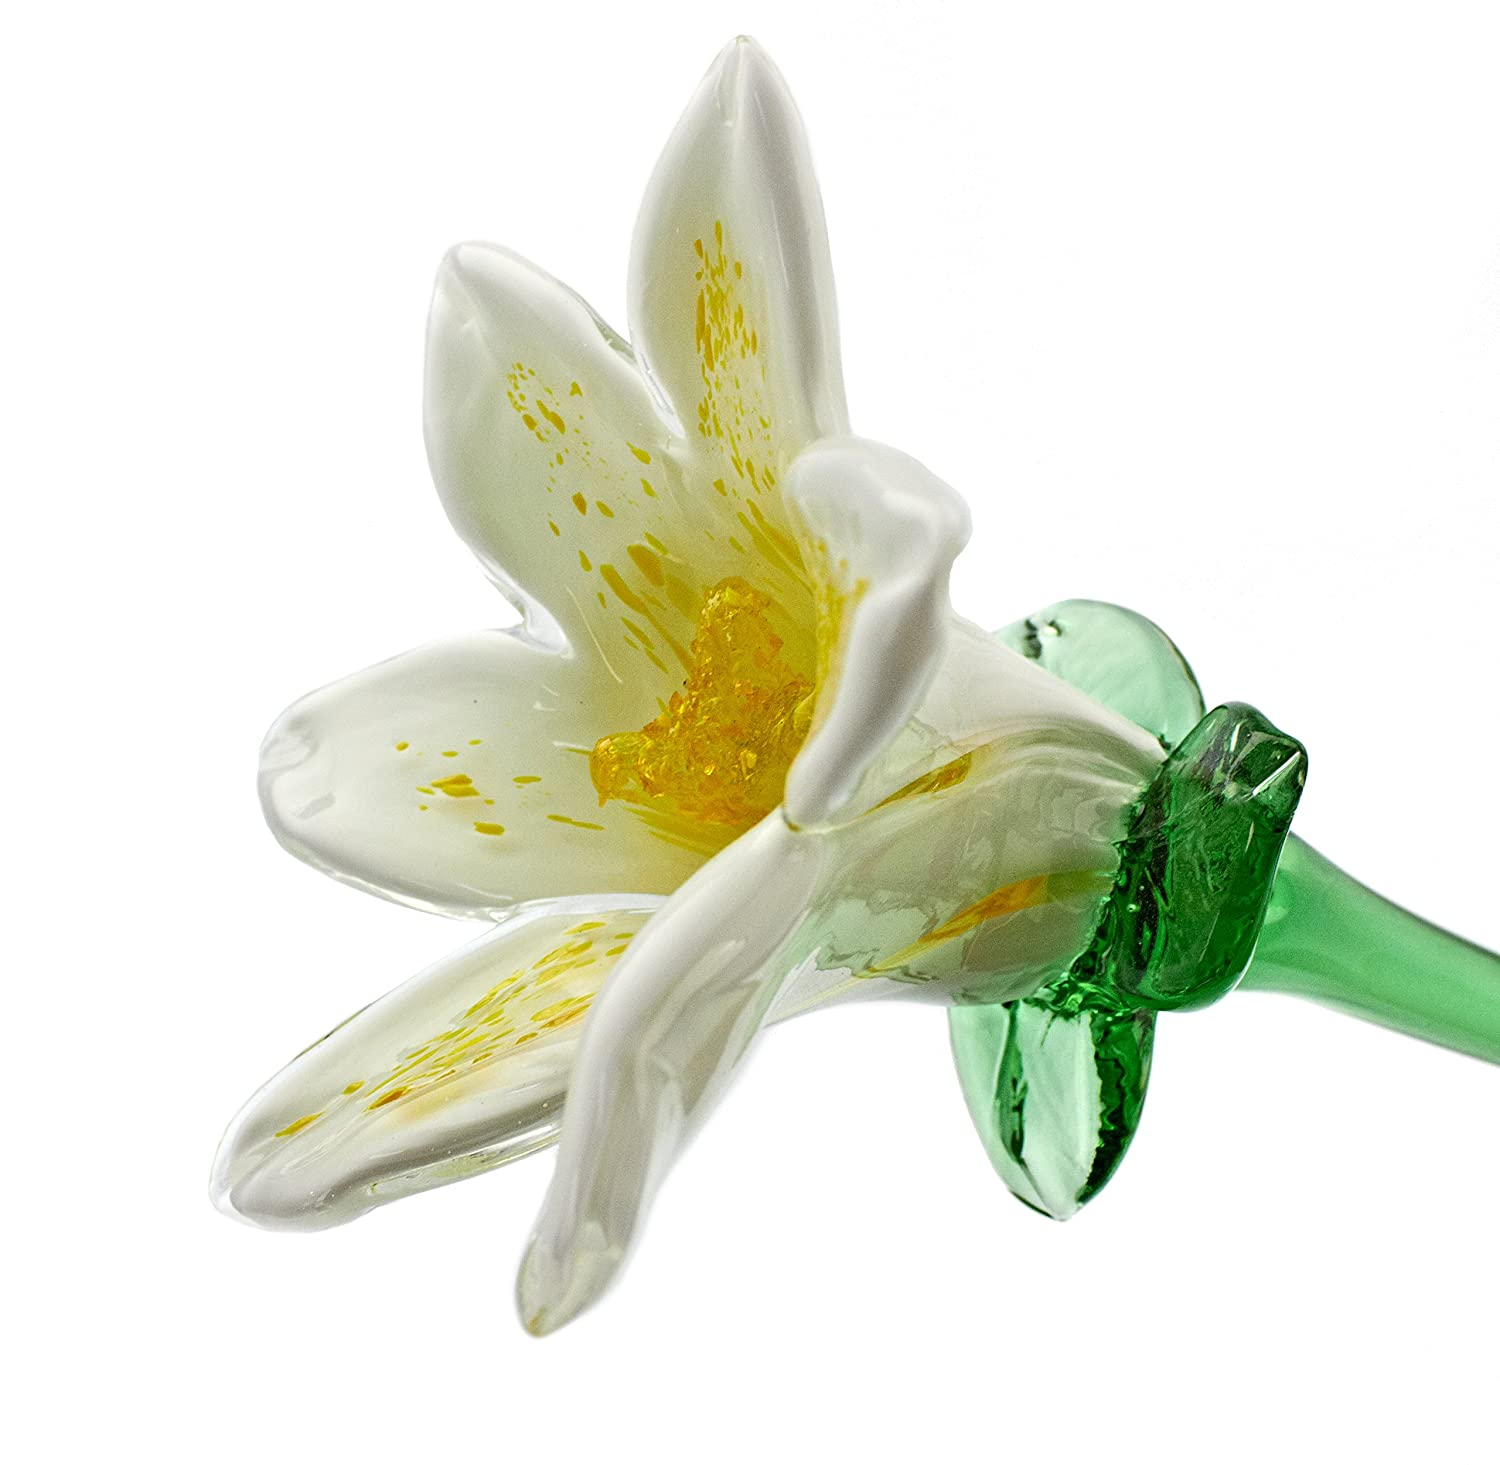 Amazon white glass lily flower one of a kind life size 20 amazon white glass lily flower one of a kind life size 20 long free shipping to the lower 48 when you spend over 3500 handmade izmirmasajfo